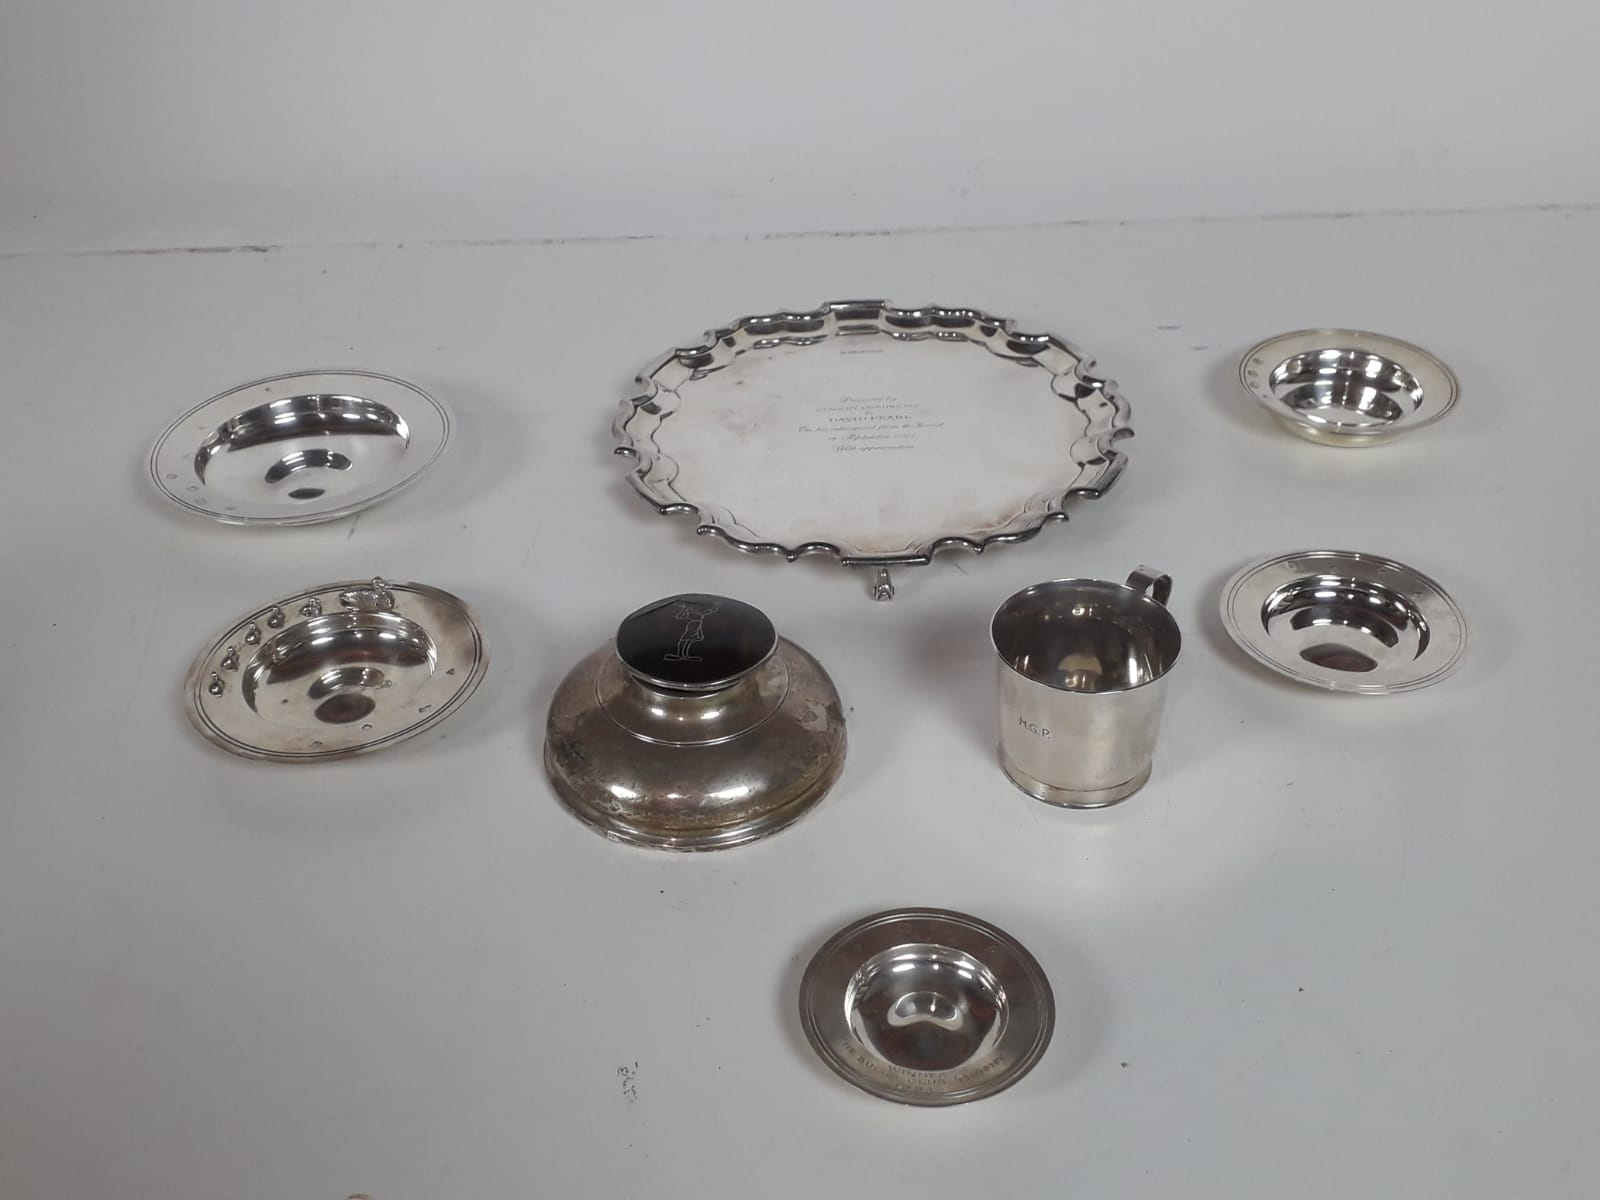 Lot 39 - A modern Sheffield silver Salver, with moulded rim on three scroll feet, c. 2000, approx.